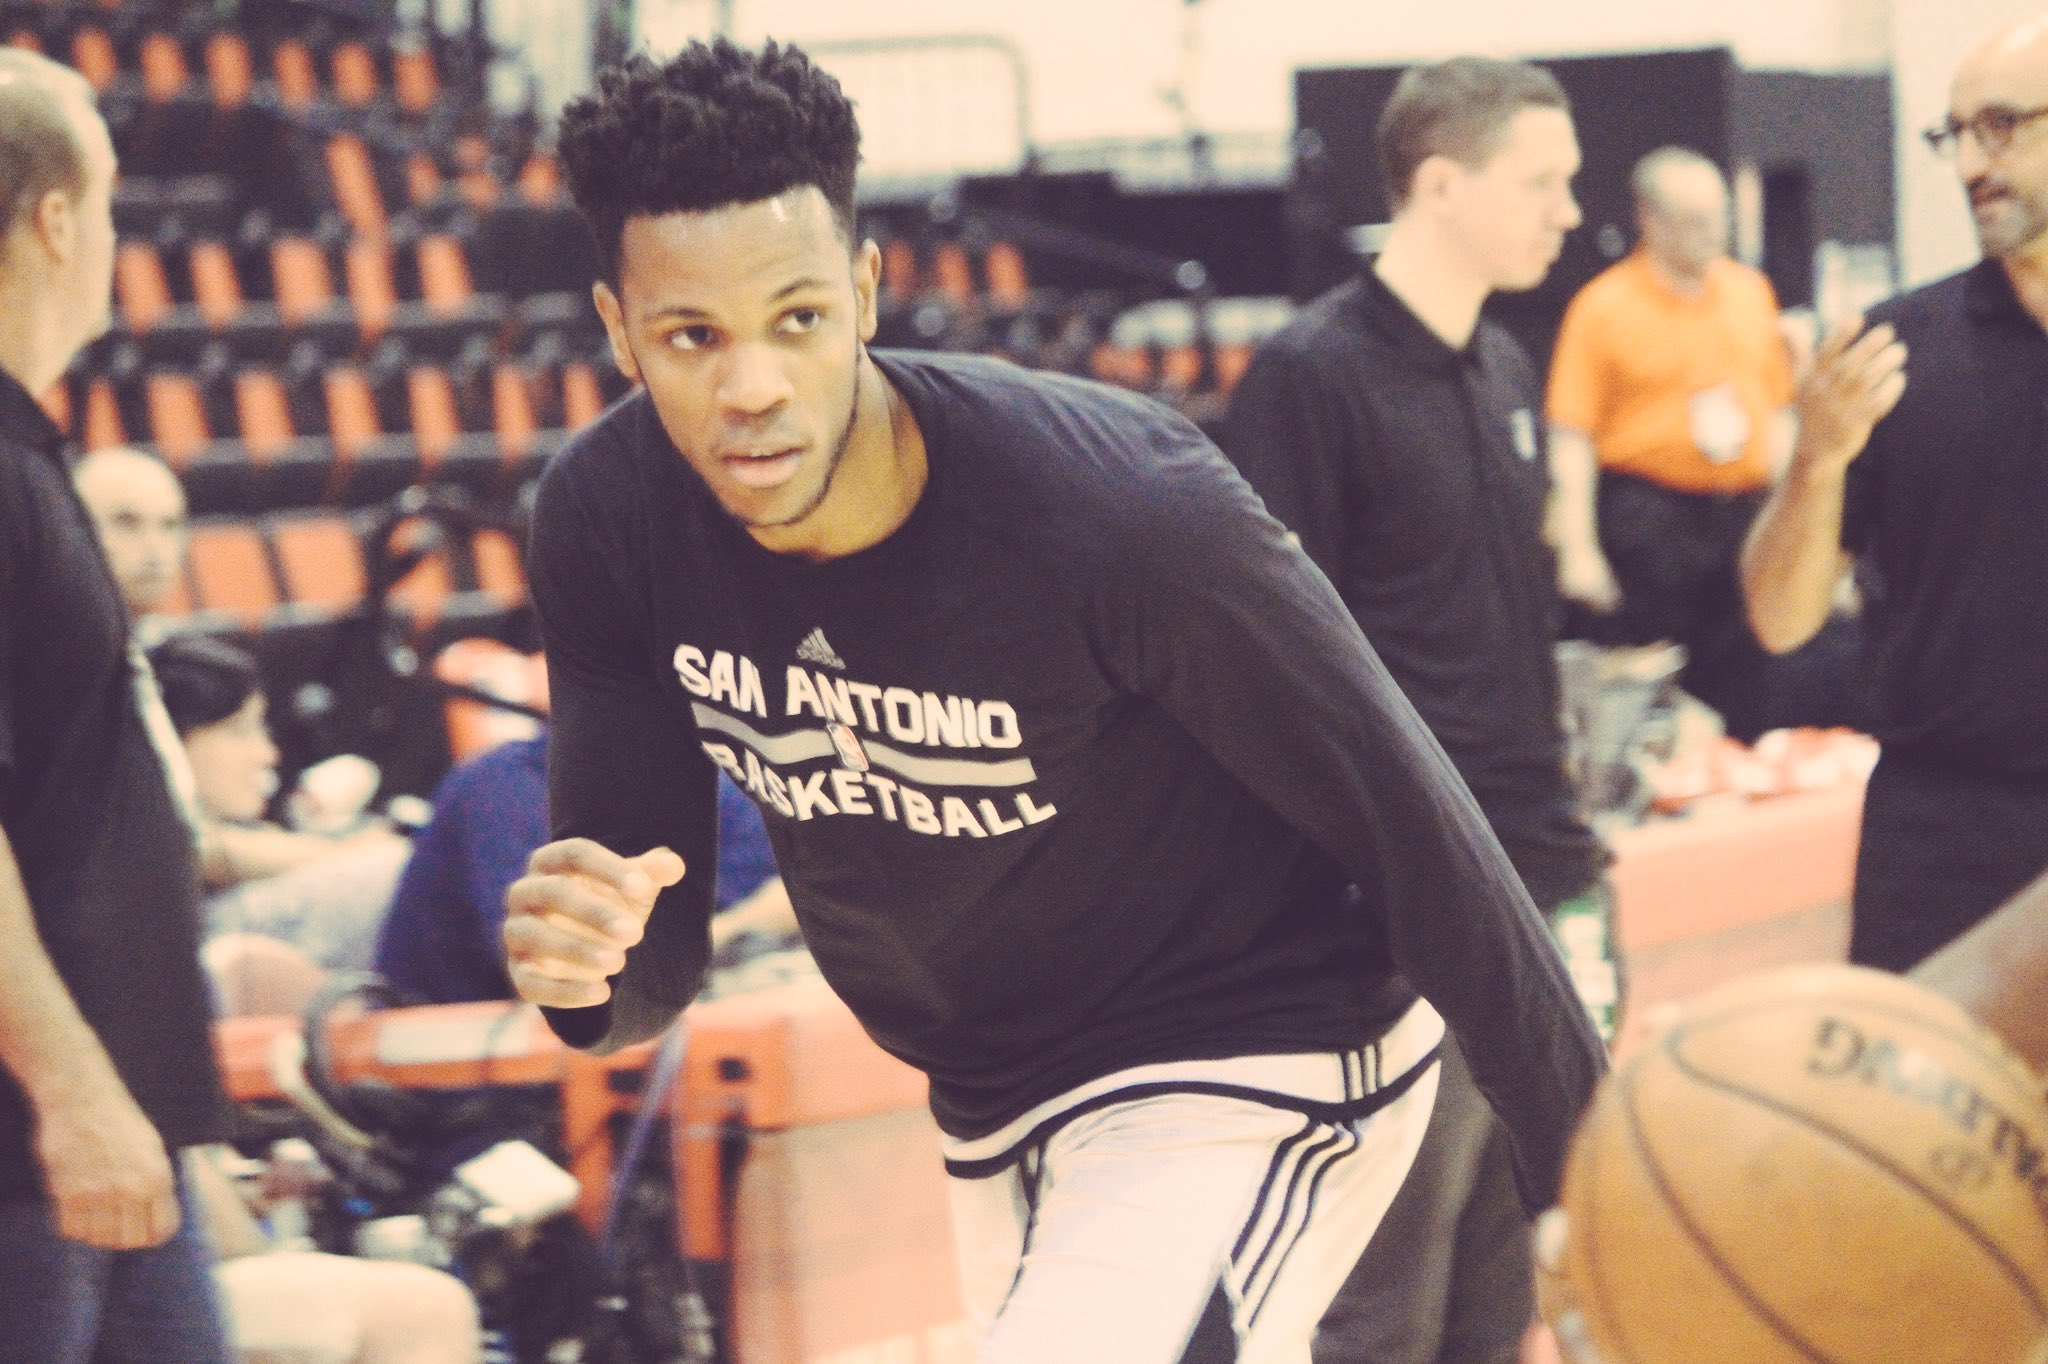 Just about that time. #SummerSpurs https://t.co/aYjIDYp6bU